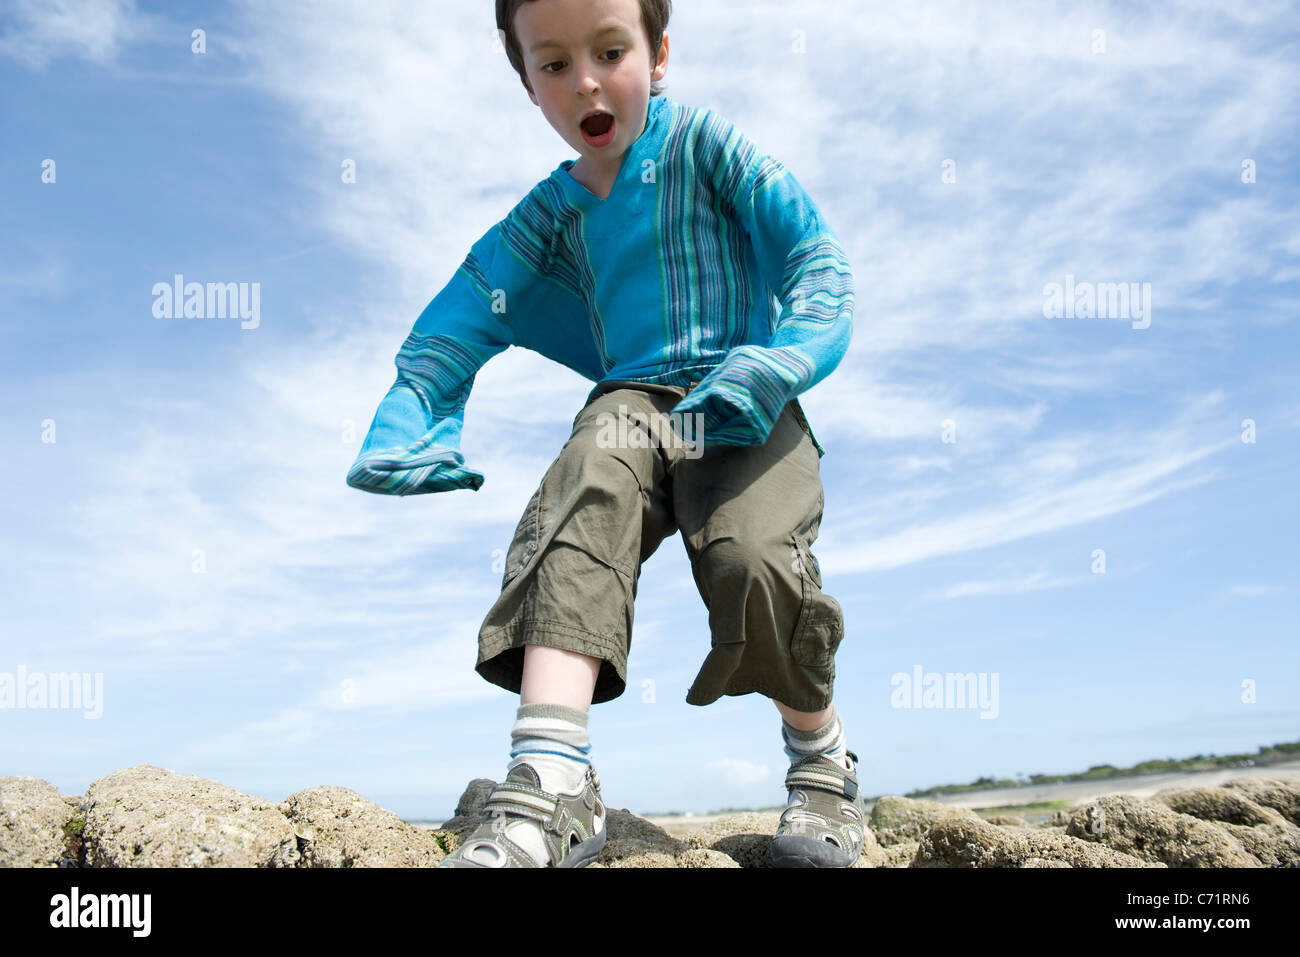 Boy playing outdoors, low angle view - Stock Image